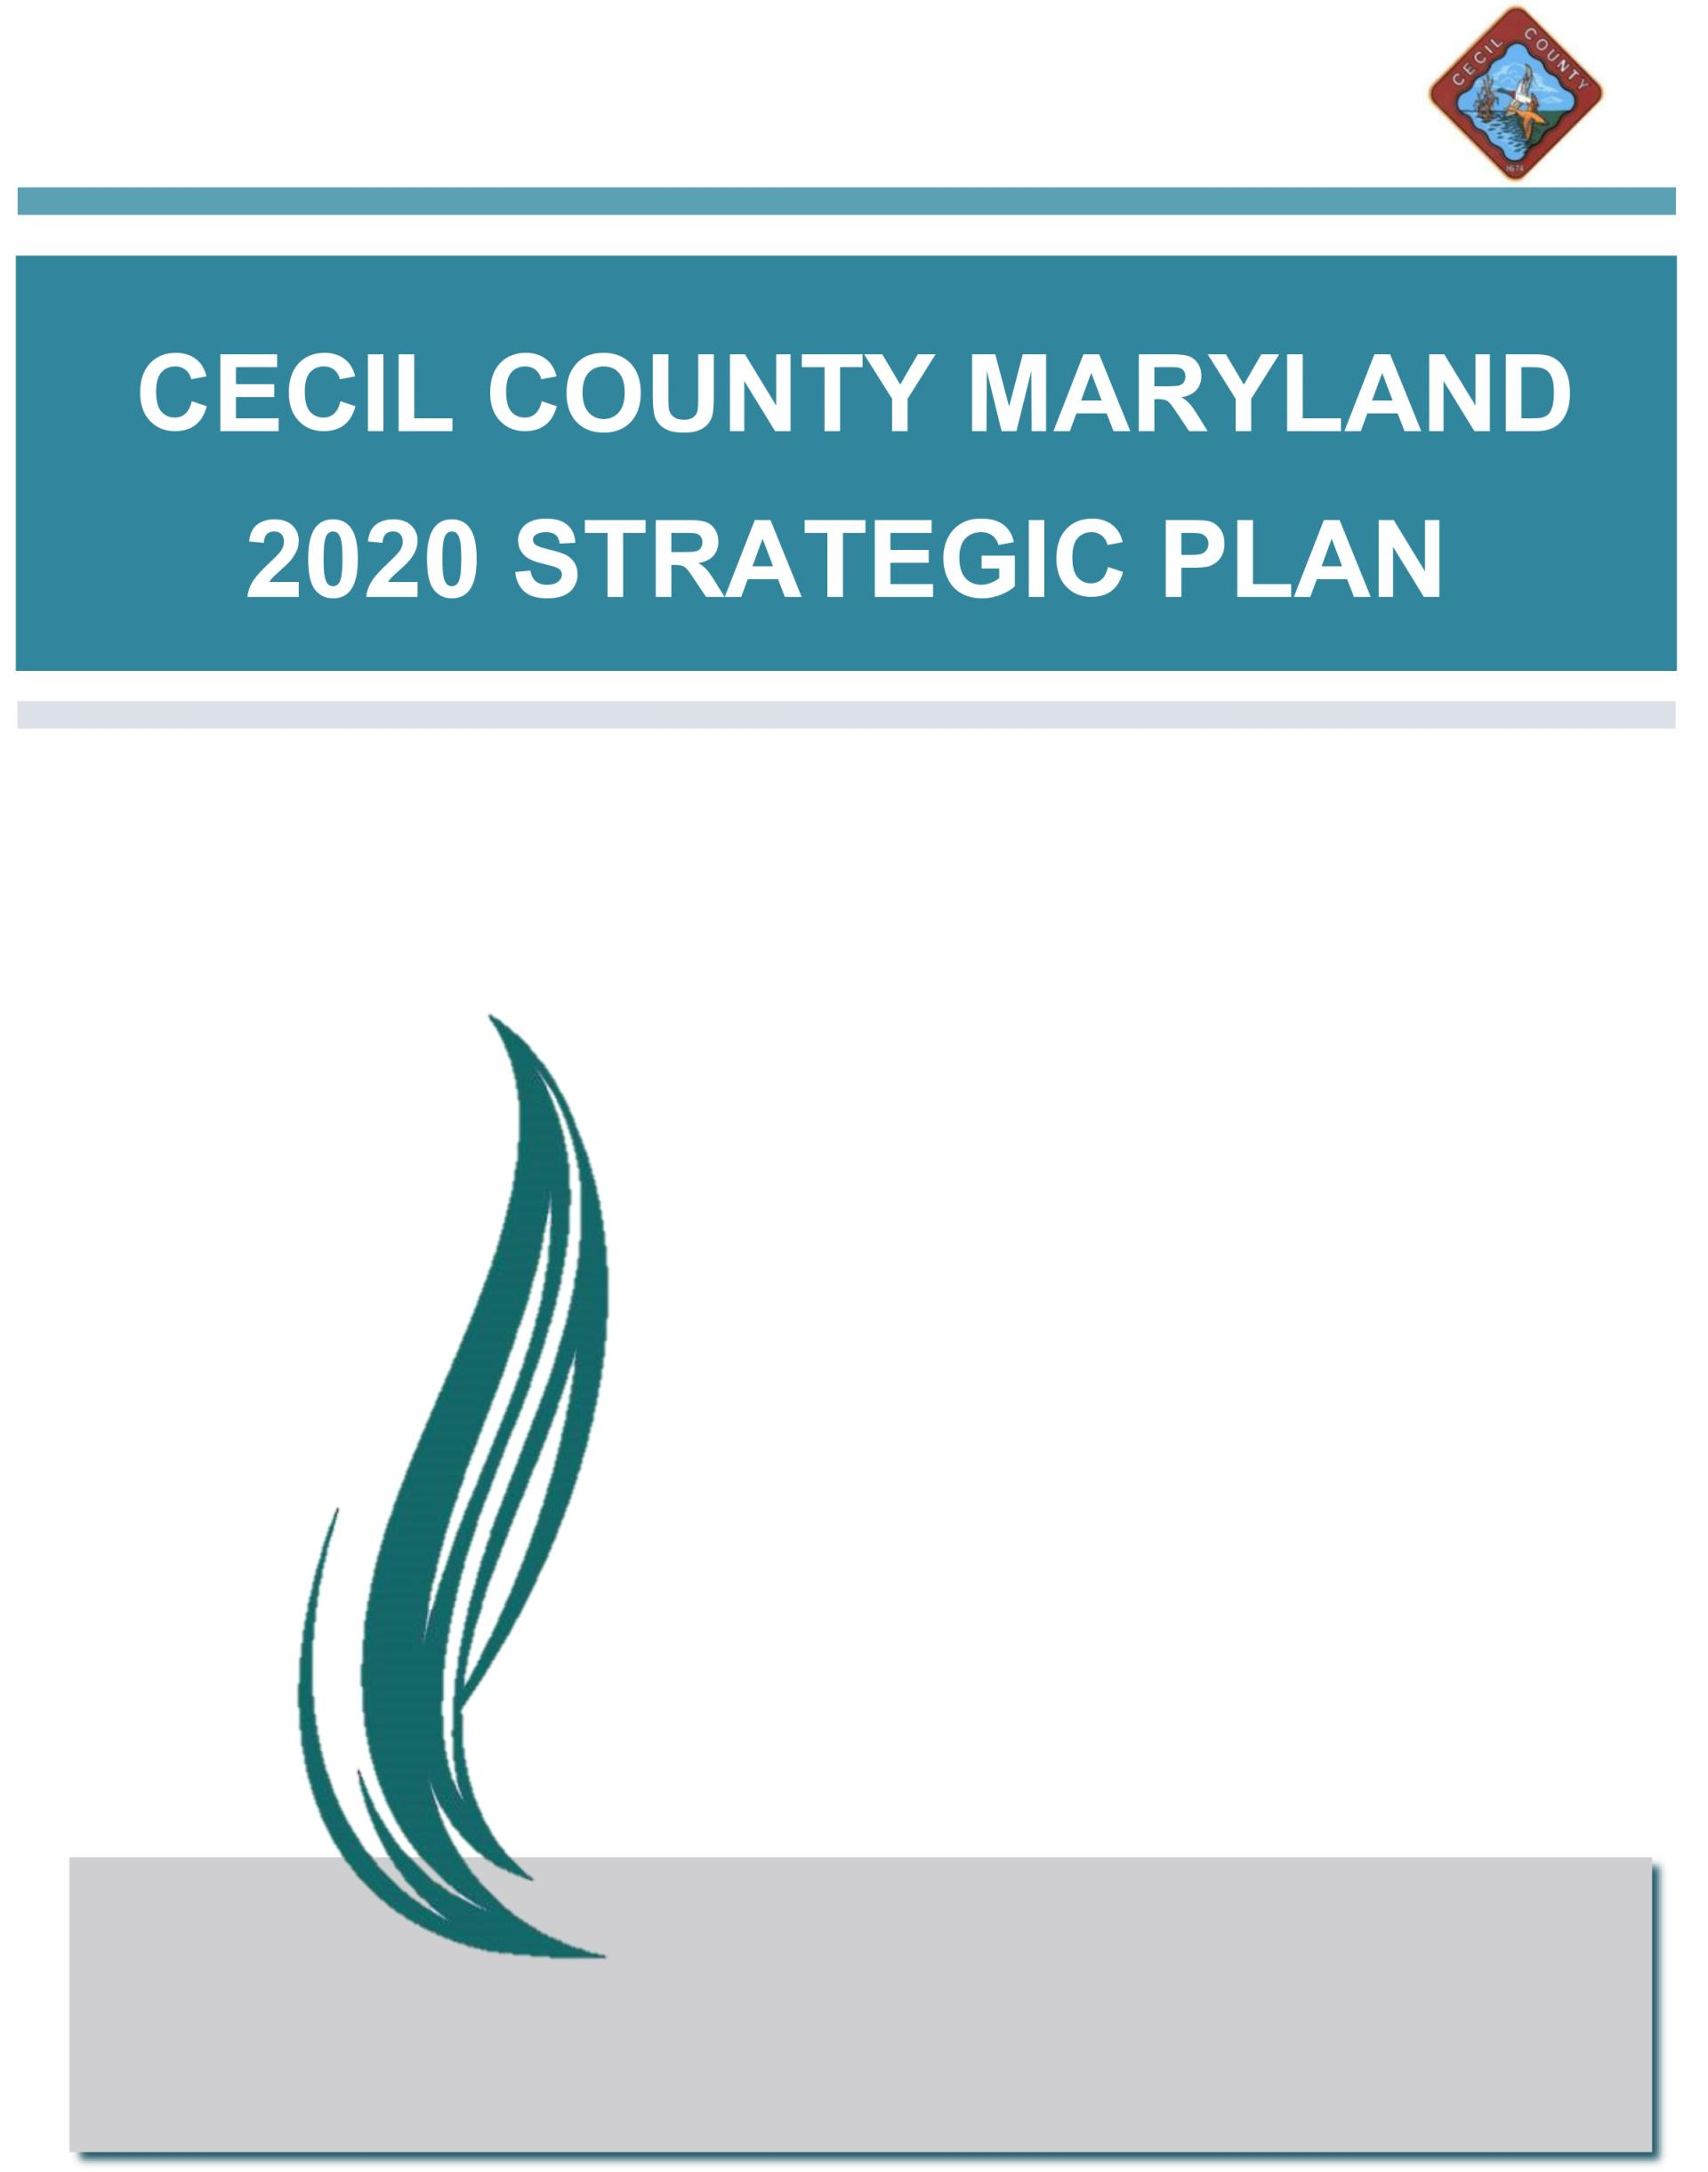 Council Approves County Executive's Amended Strategic Plan